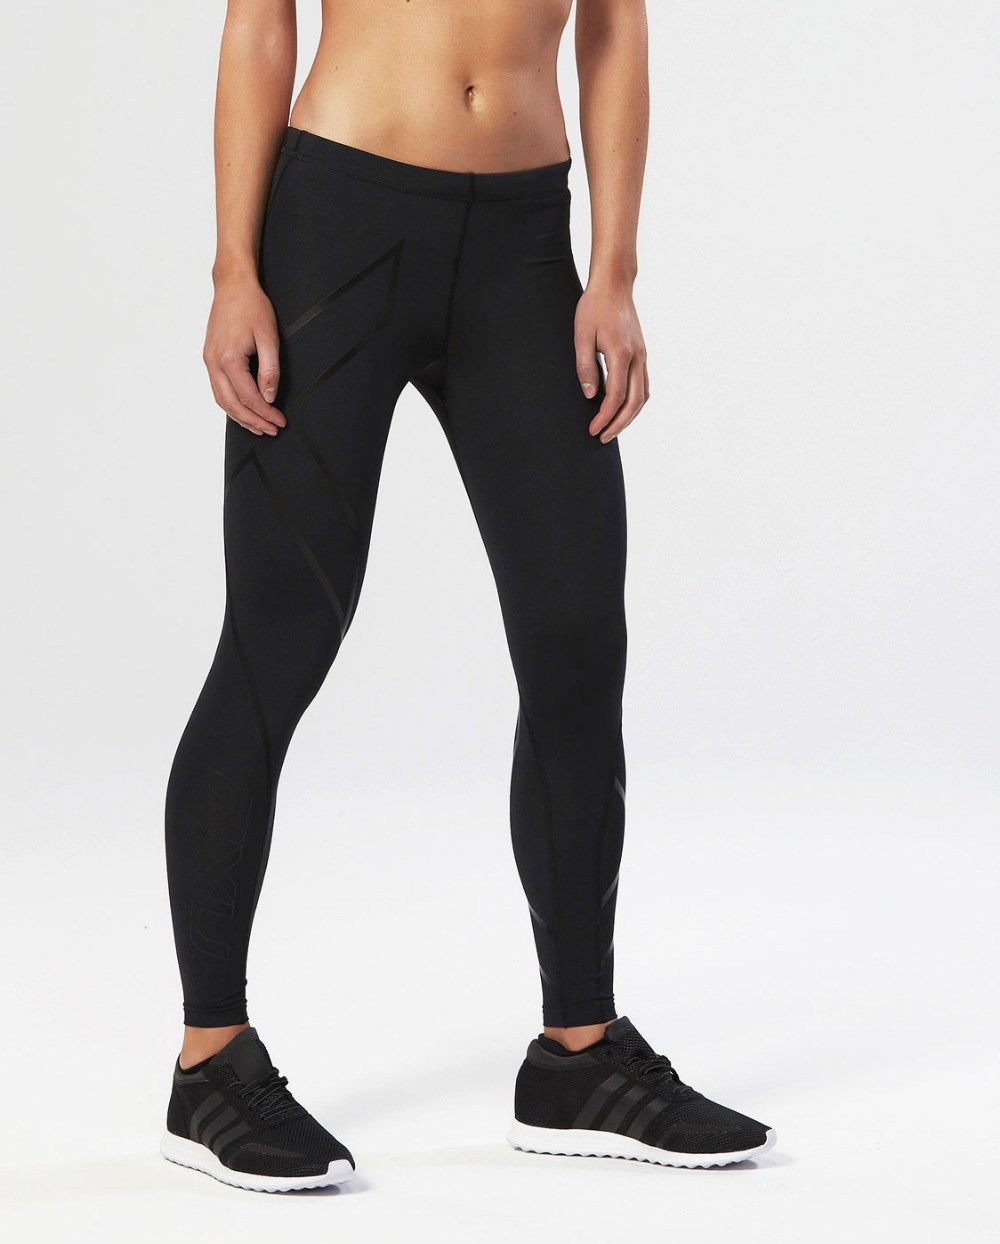 Compression pants women Autumn and winter running tights trousers fitness pants elastic marathon quick-drying 1